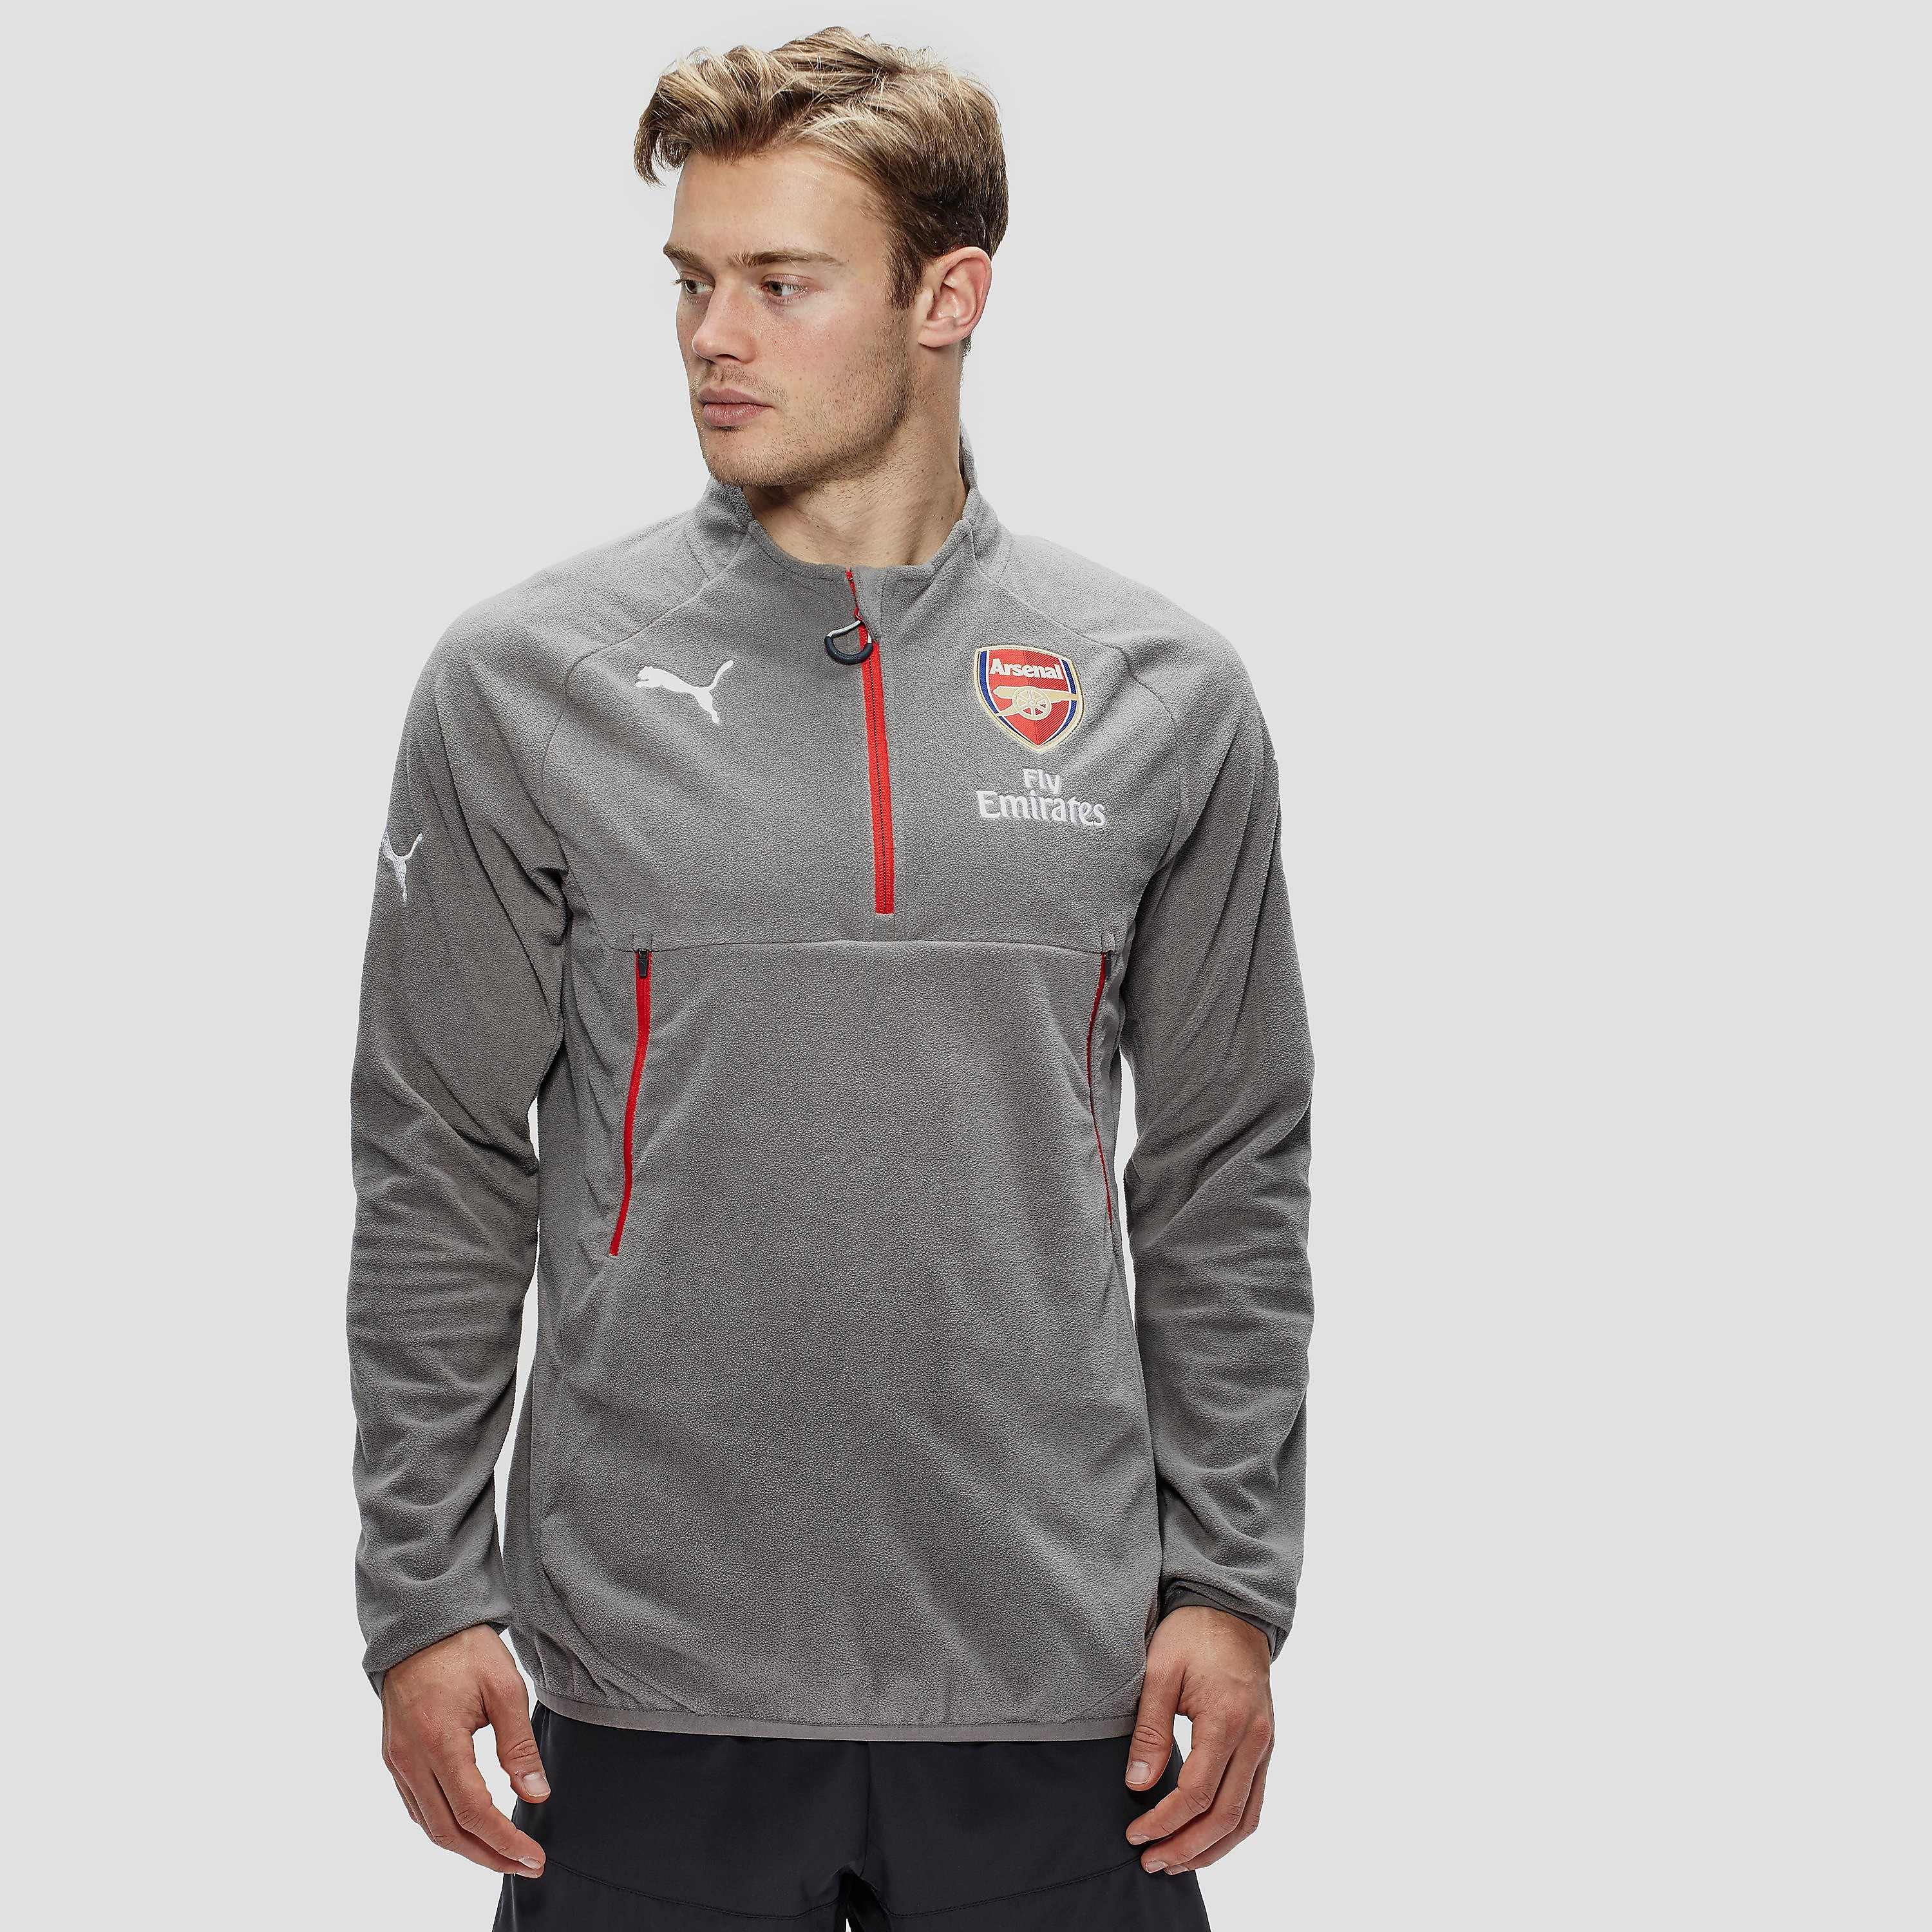 PUMA ARSENAL MEN'S TRAINING FLEECE